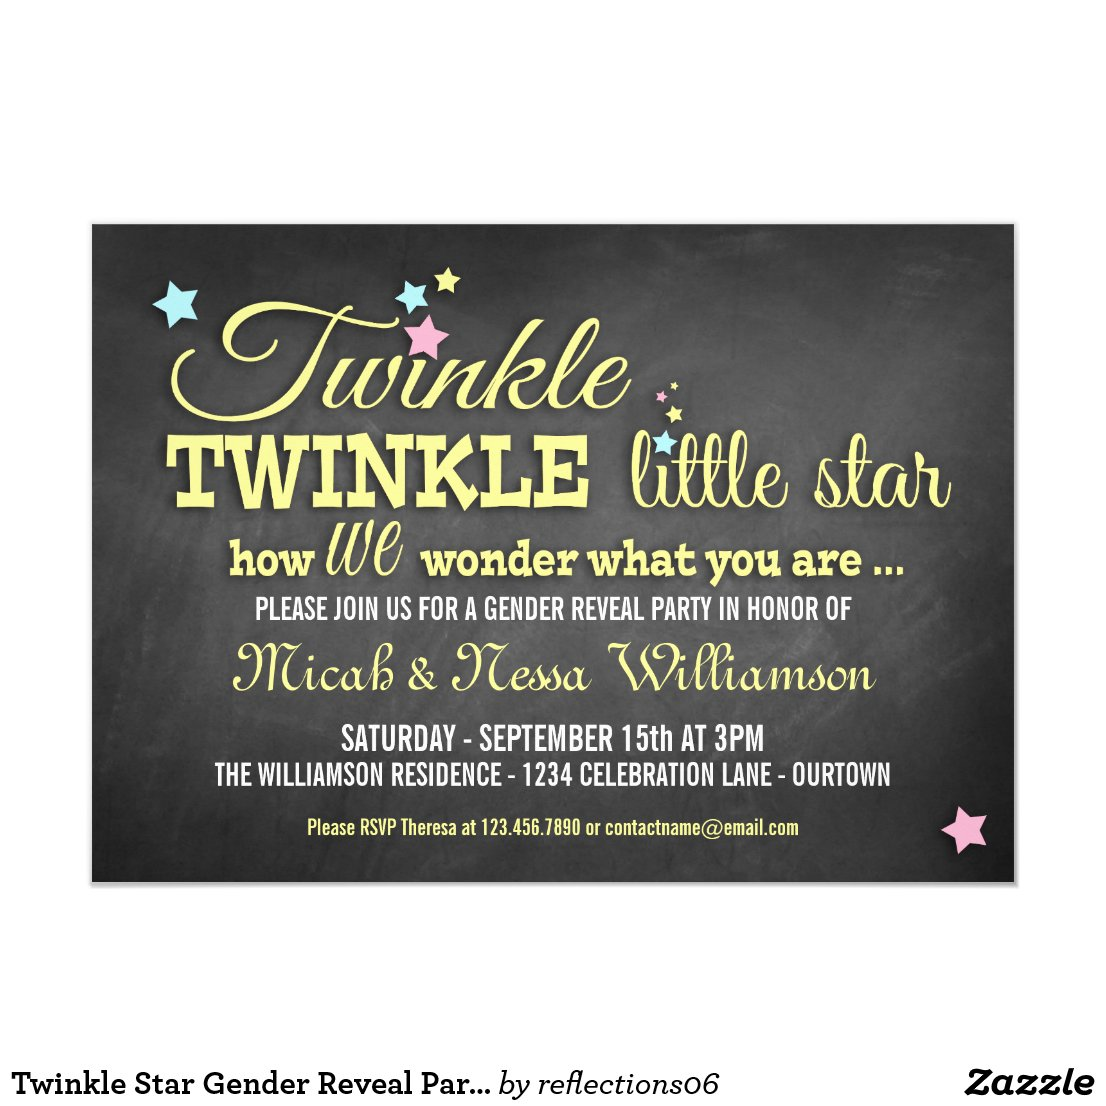 Twinkle Star Gender Reveal Party Invitation